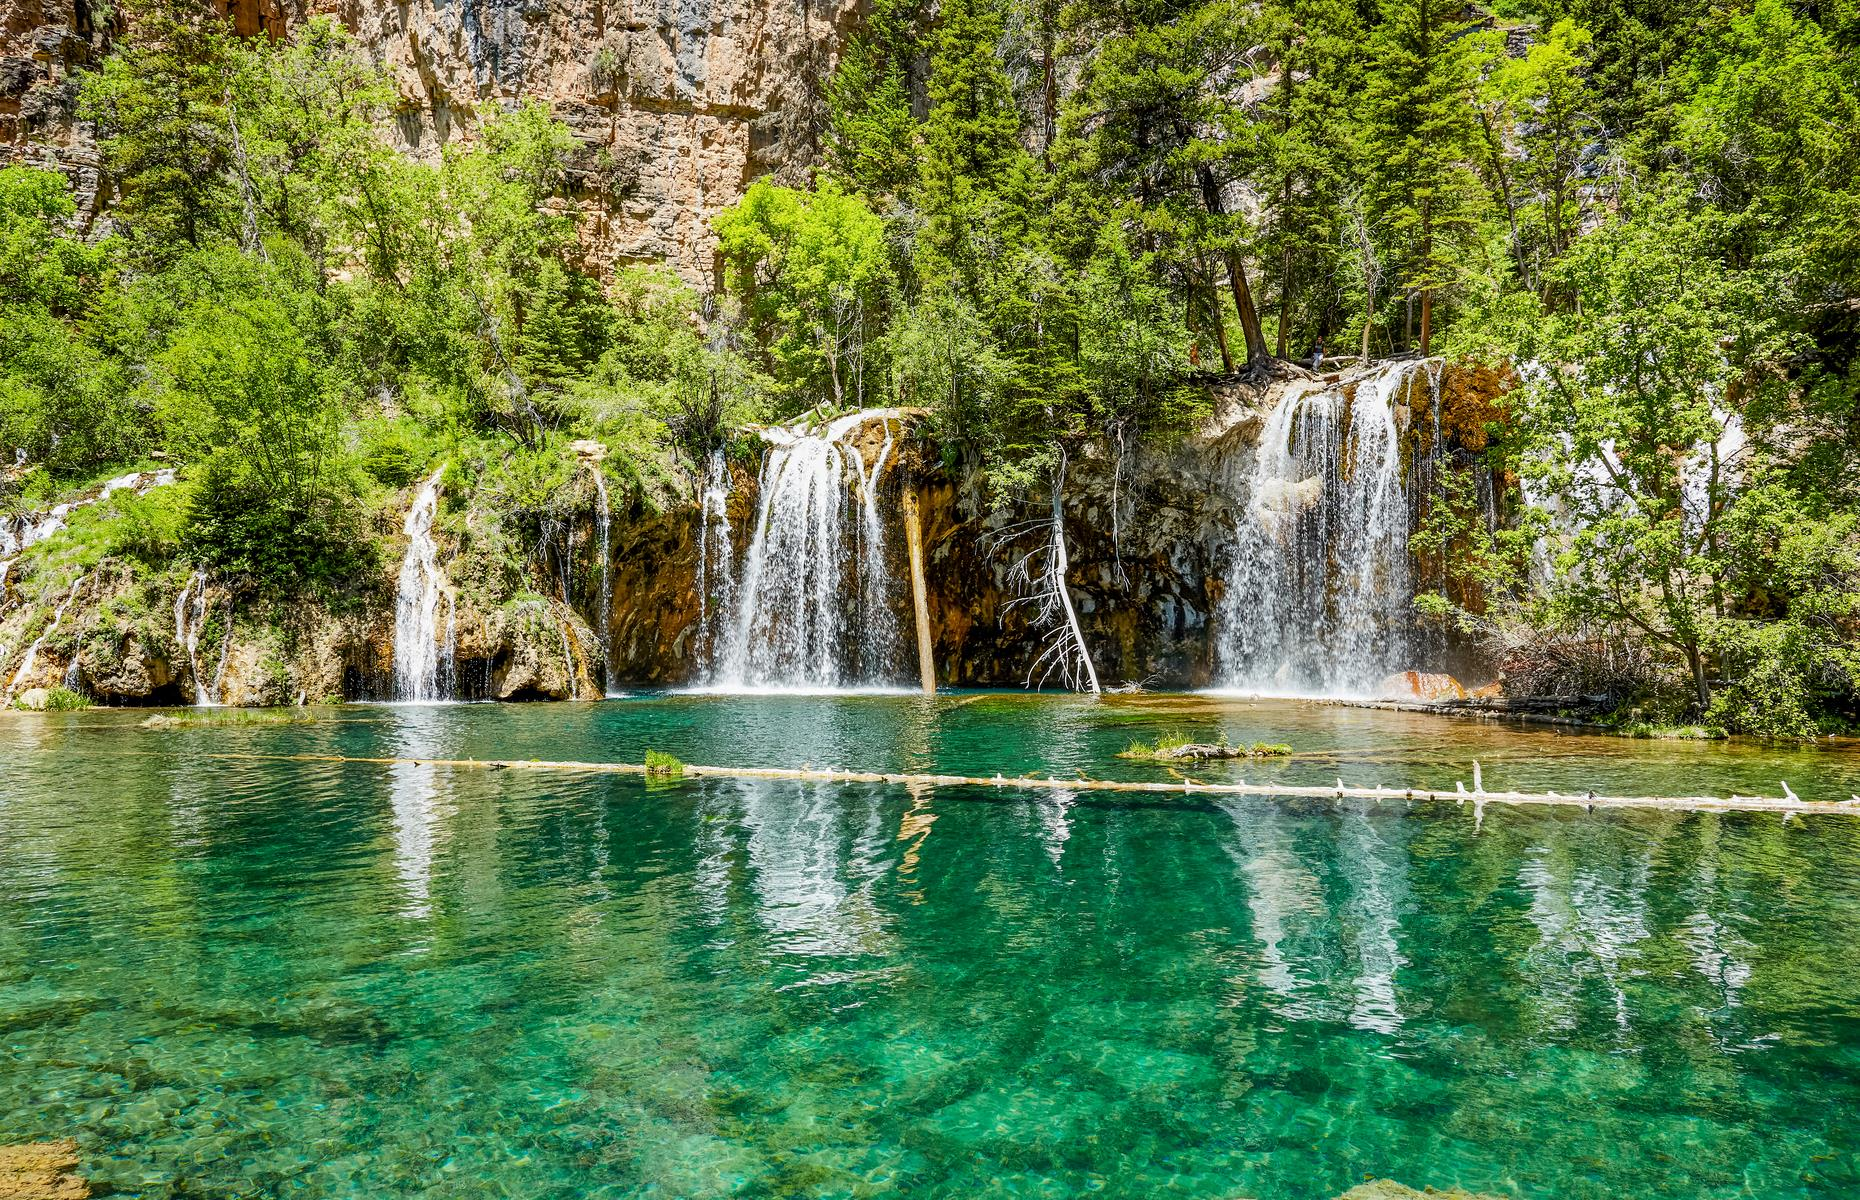 Slide 24 of 31: Waterfalls cascade into shimmering, spearmint-hued pools at Hanging Lake, located in Glenwood Canyon. The lake is so-named because it appears to hang from a cliff and its dramatic beauty more than makes up for its small size.